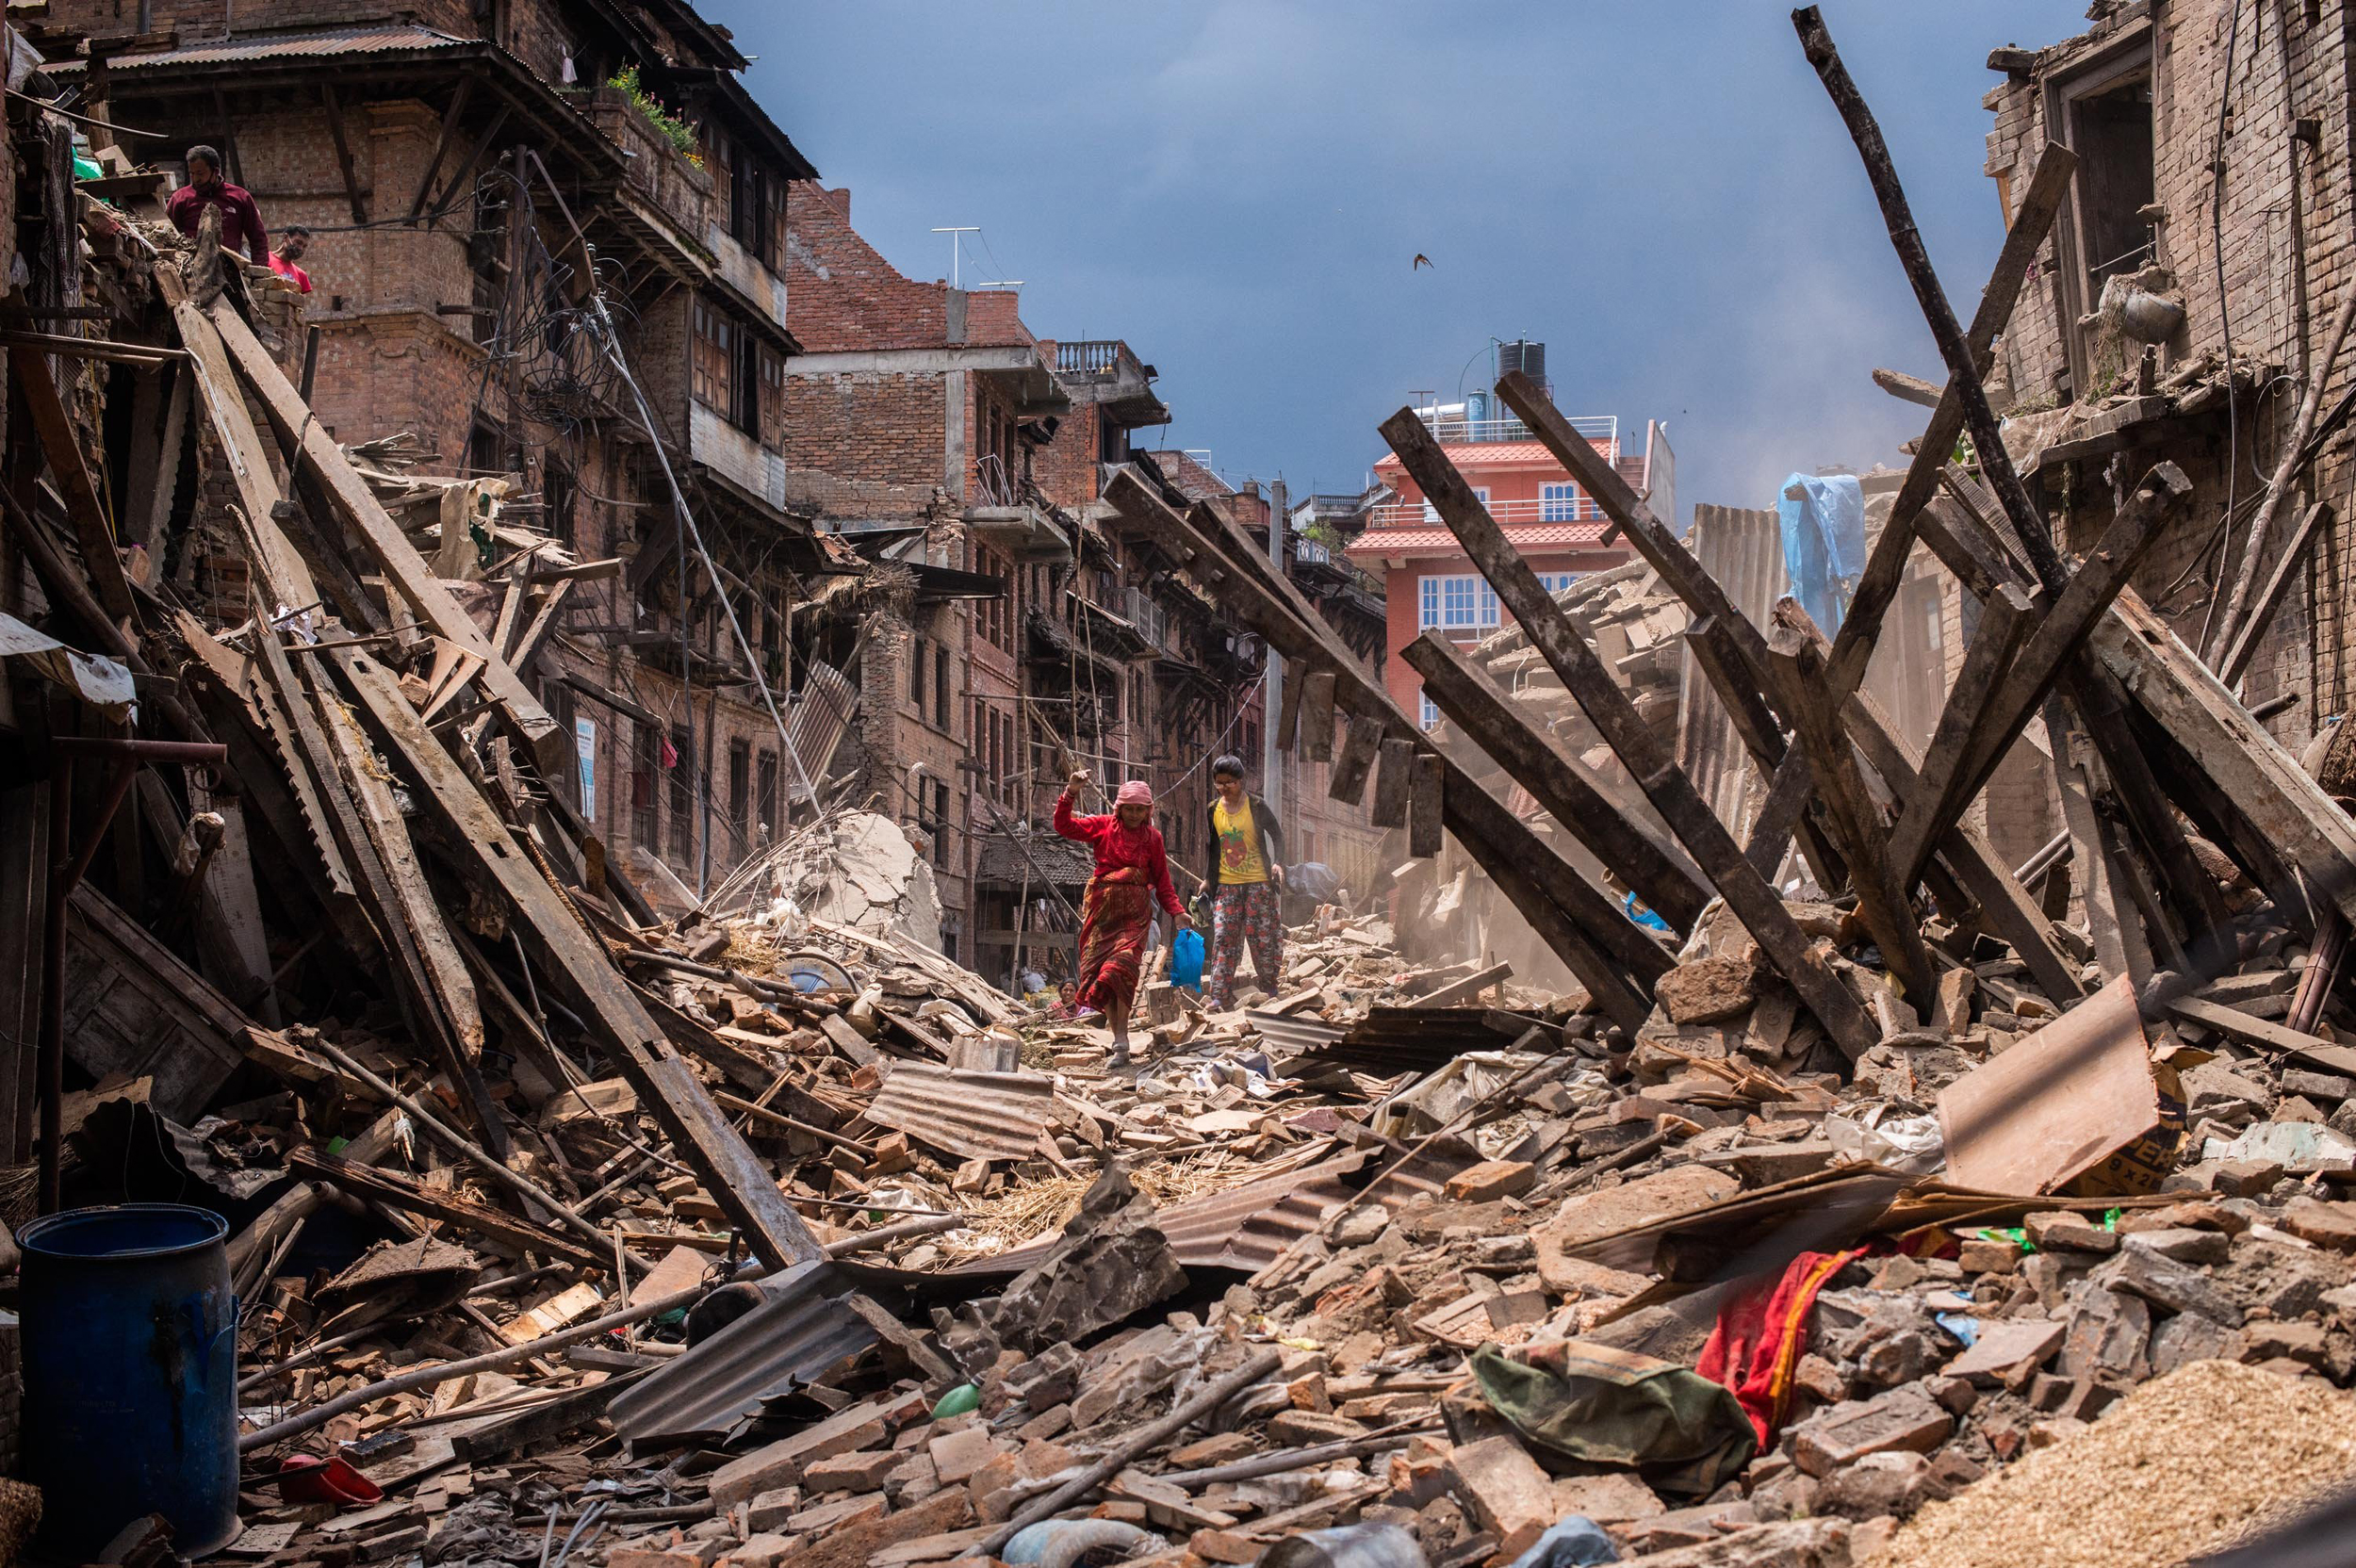 Image: *** BESTPIX *** Rescue Operations Continue Following Devastating Nepal Earthquake